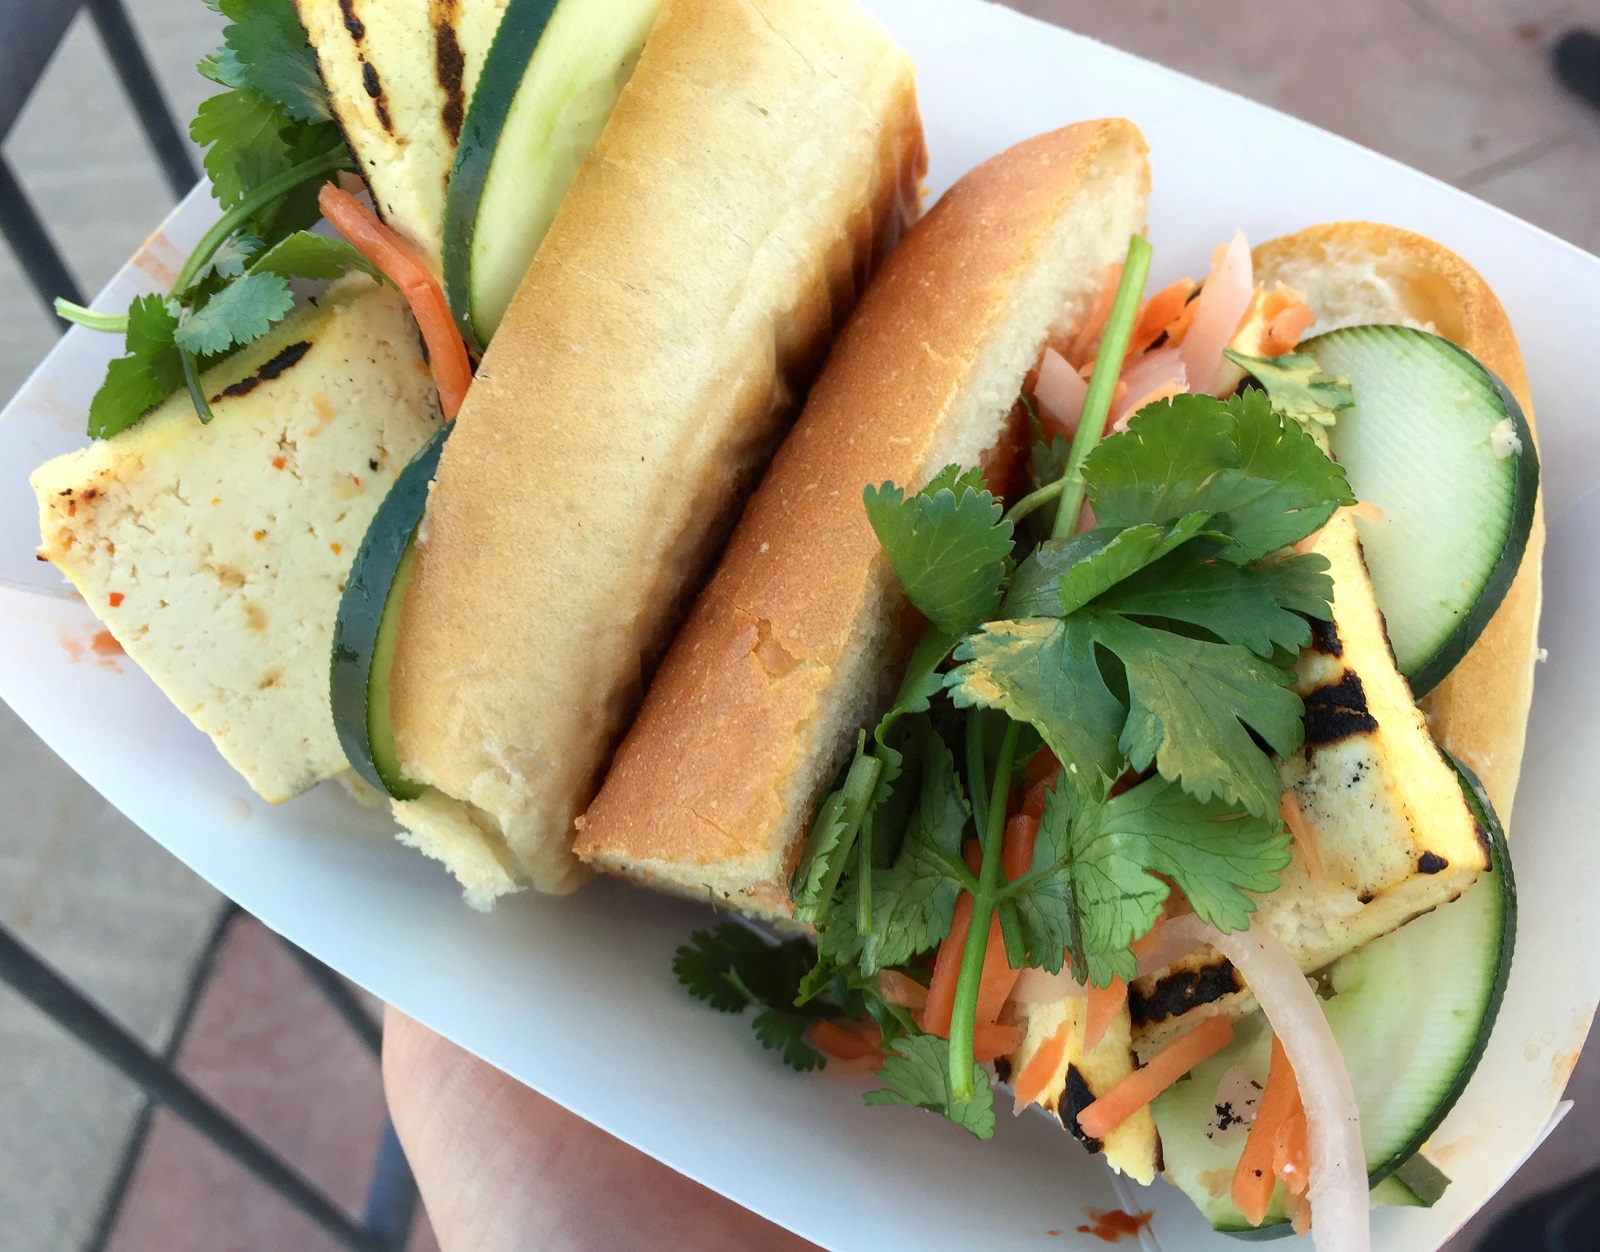 Vietnamese banh mi with tofu from The Black Market Food Truck, $9. (Alex Mikol/Special to The News)